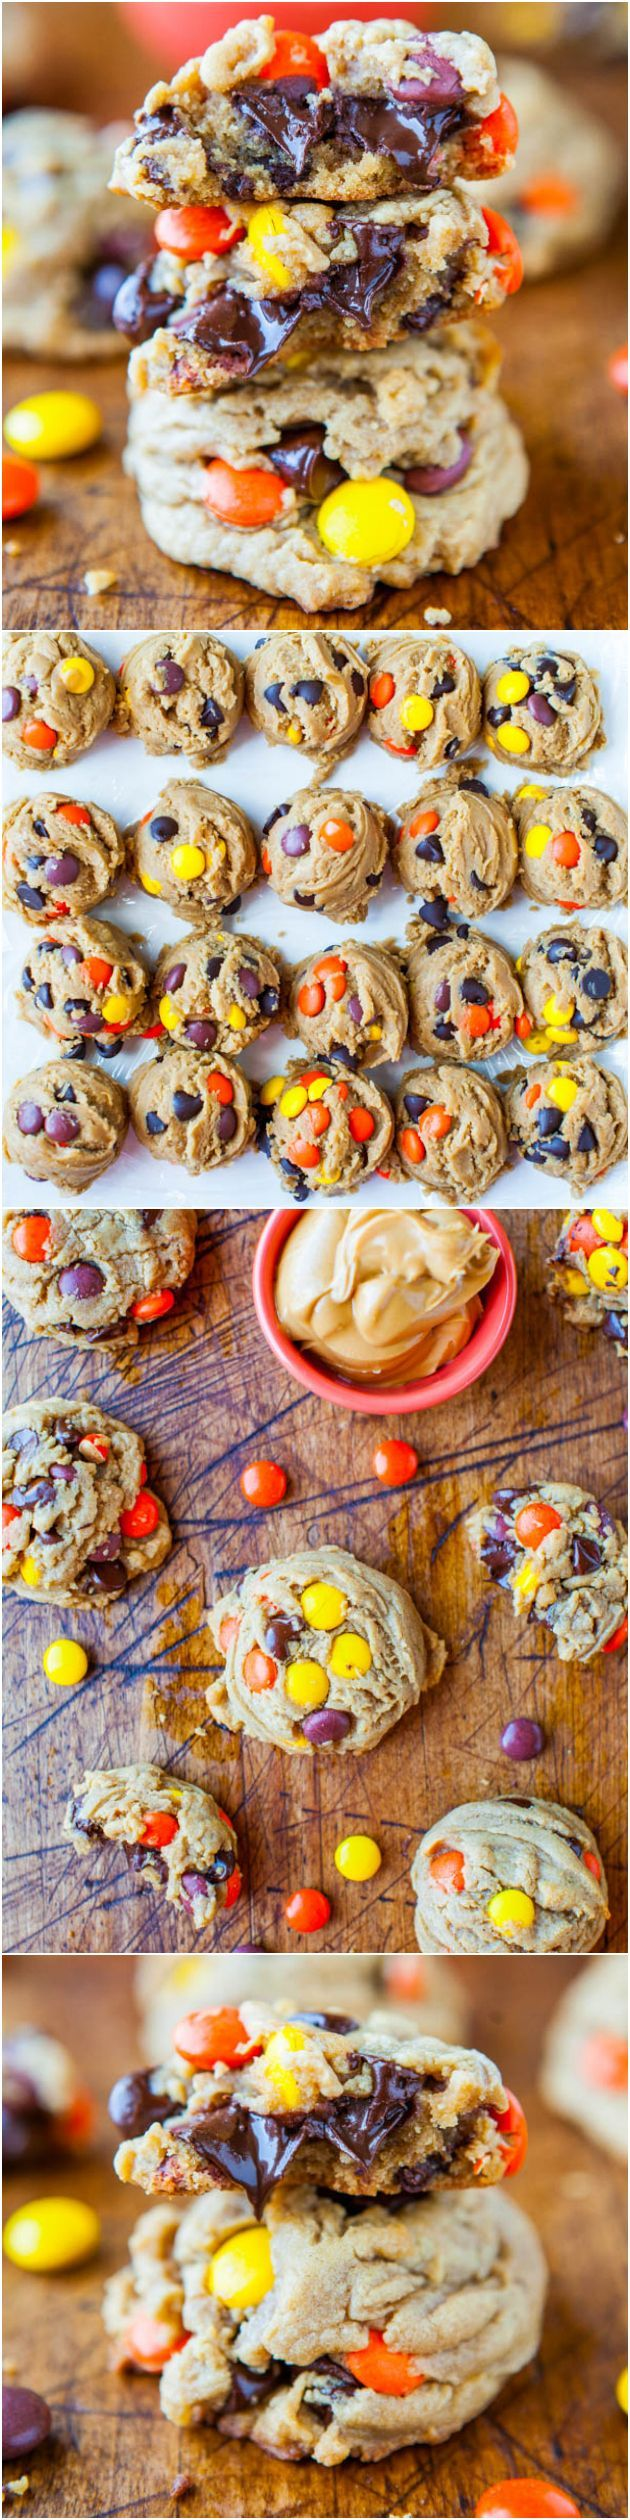 Reese's Pieces Soft Peanut Butter Cookies - Peanut butter lovers' will go nuts for these super soft cookies loaded with Reese's Pieces & chocolate! Easy recipe at averiecooks.com